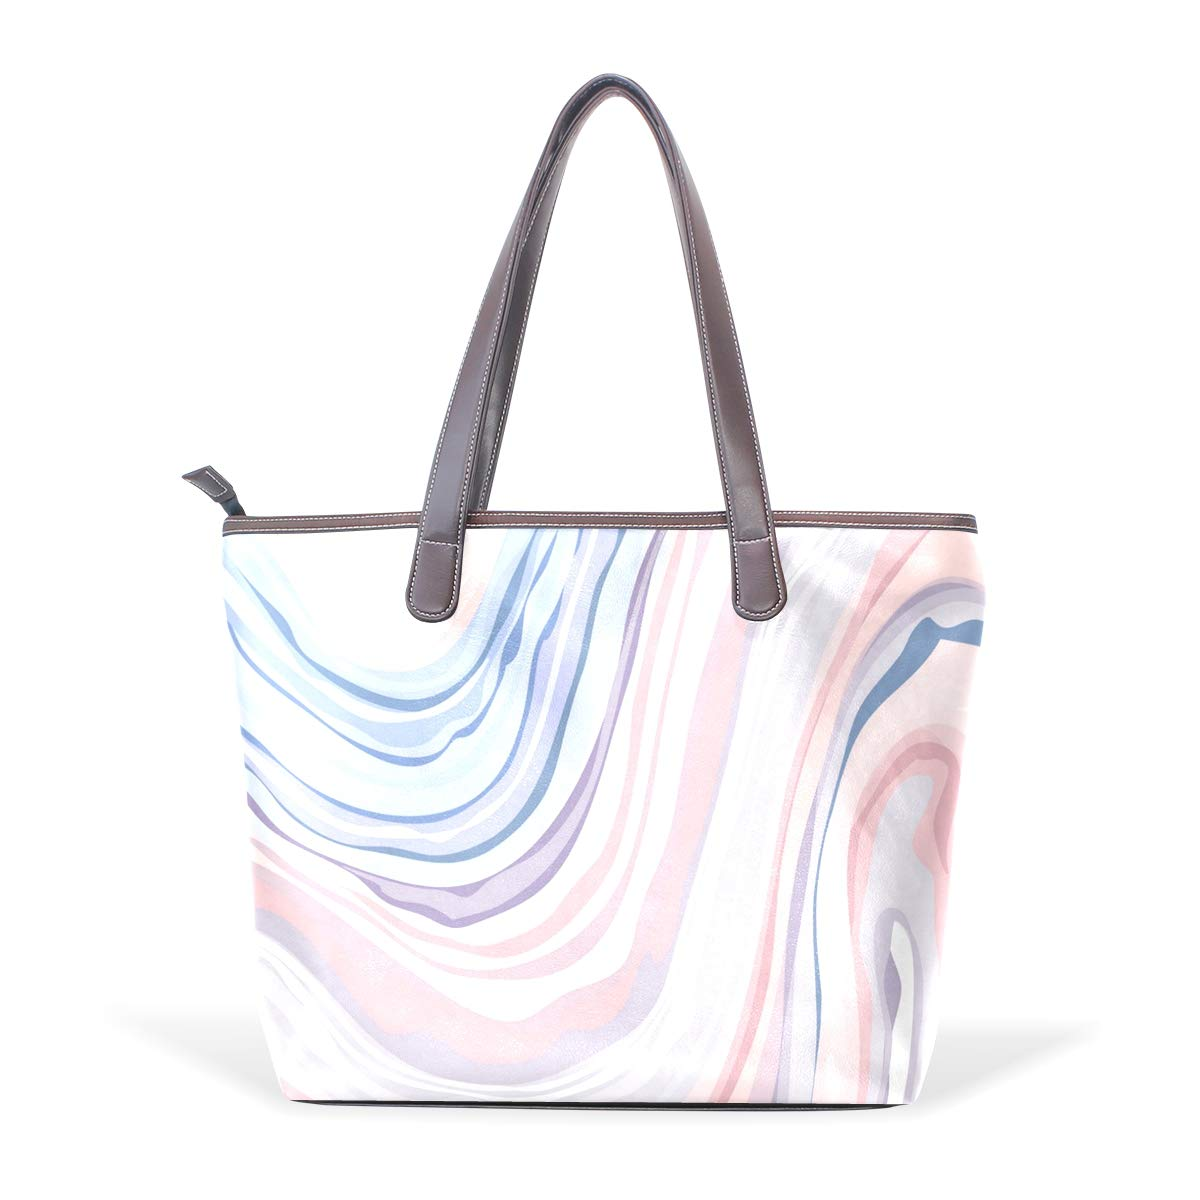 Multicolored Marble PatternWomens Vintage Leather Tote Urban Style Satchel Tote